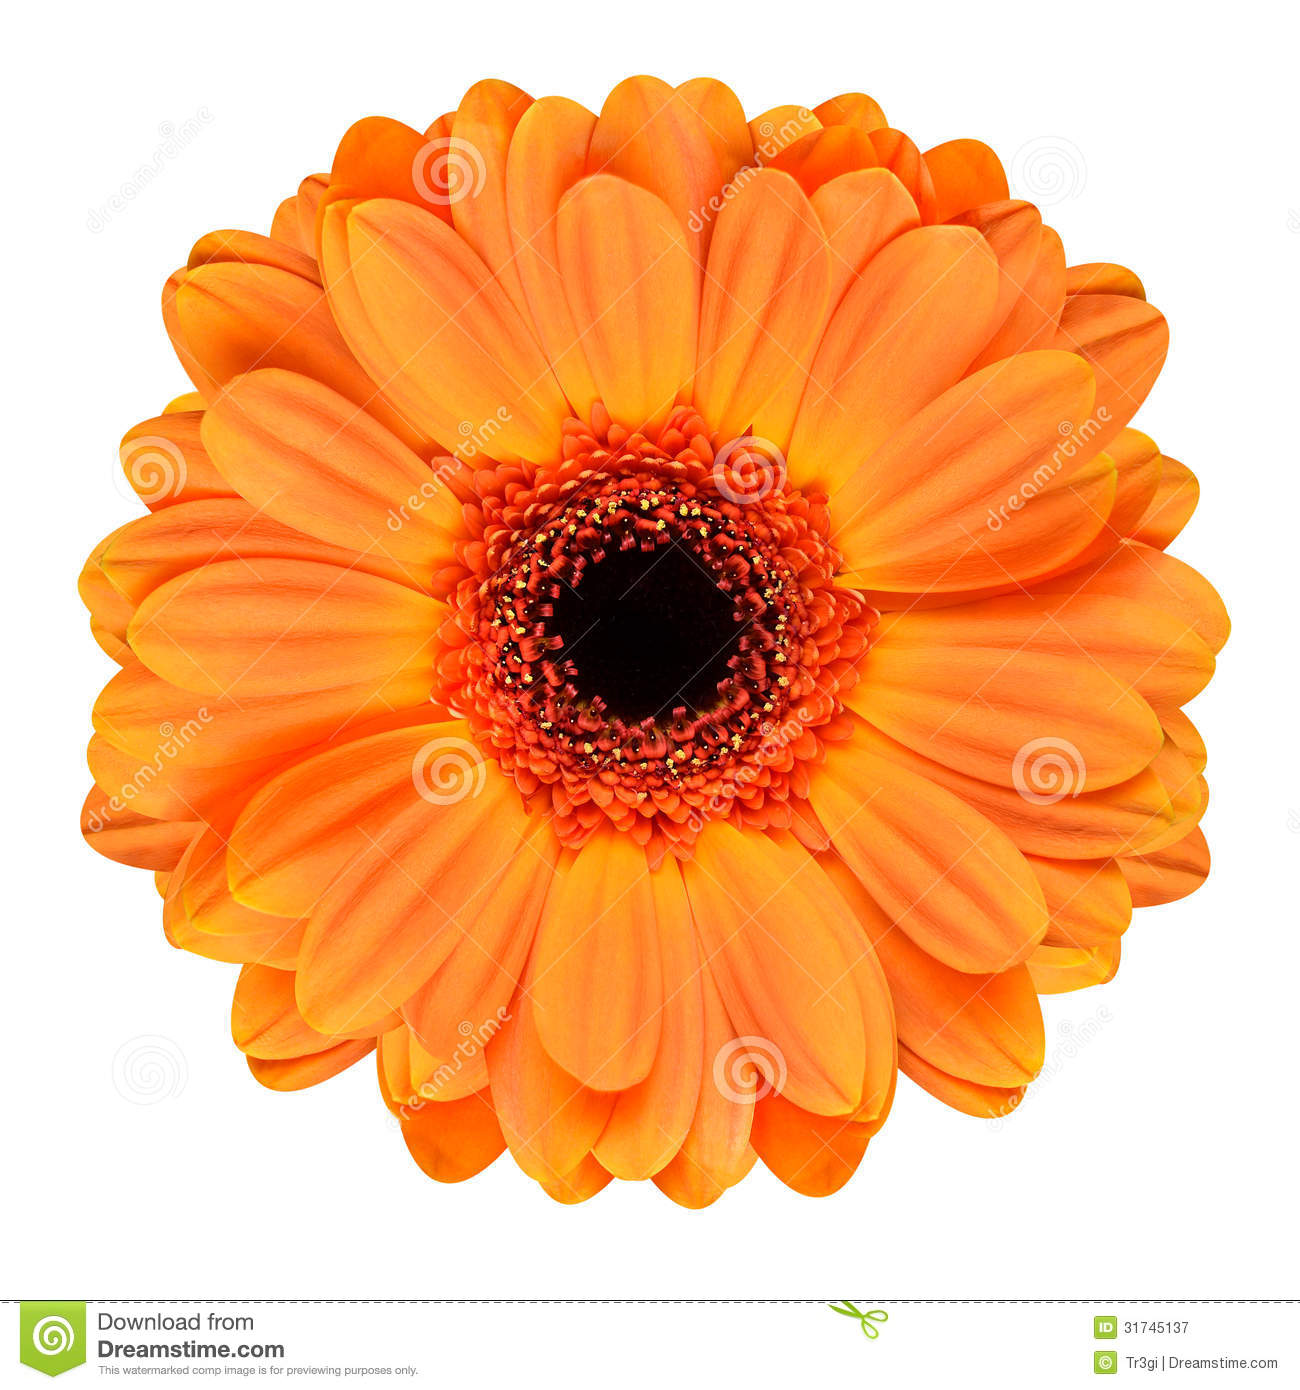 Bunch of lavender flowers on white background stock image image of orange gerbera flower isolated on white royalty free stock photography mightylinksfo Image collections